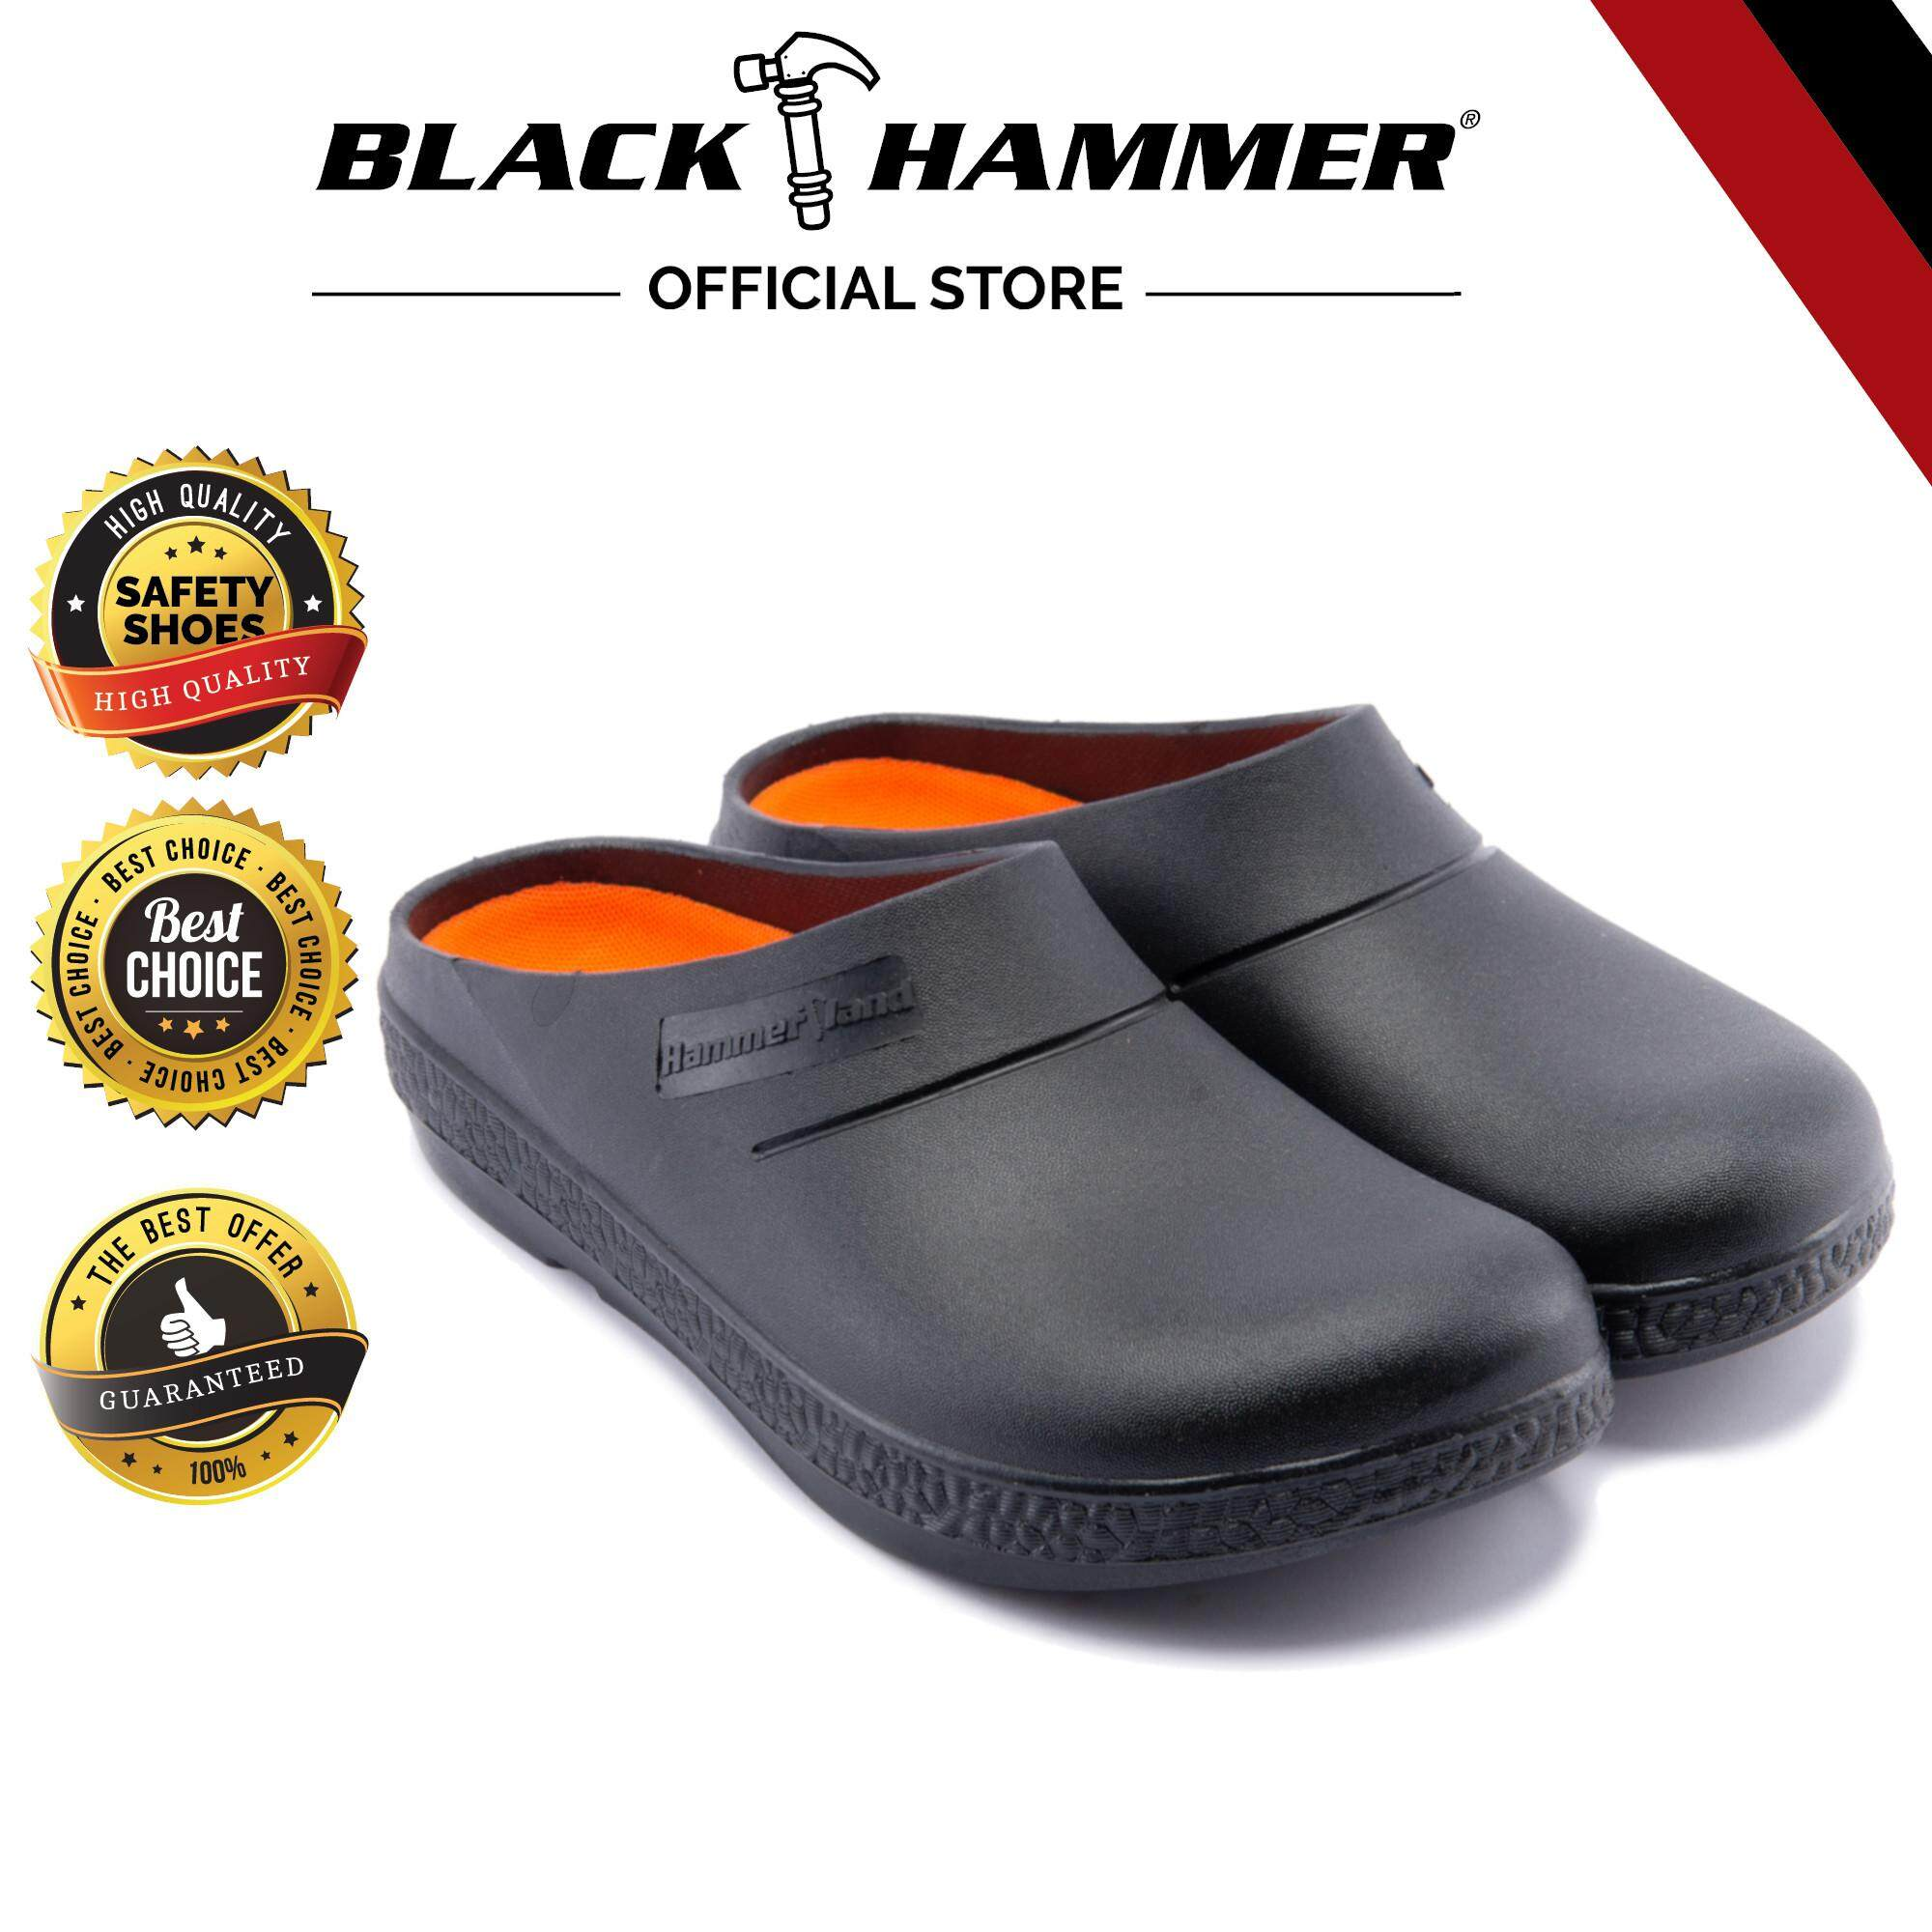 d5ac2be22 Men's Shoes. 539349 items found in Shoes. HAMMERLAND SAFETY CLOGS HAM-S081-K